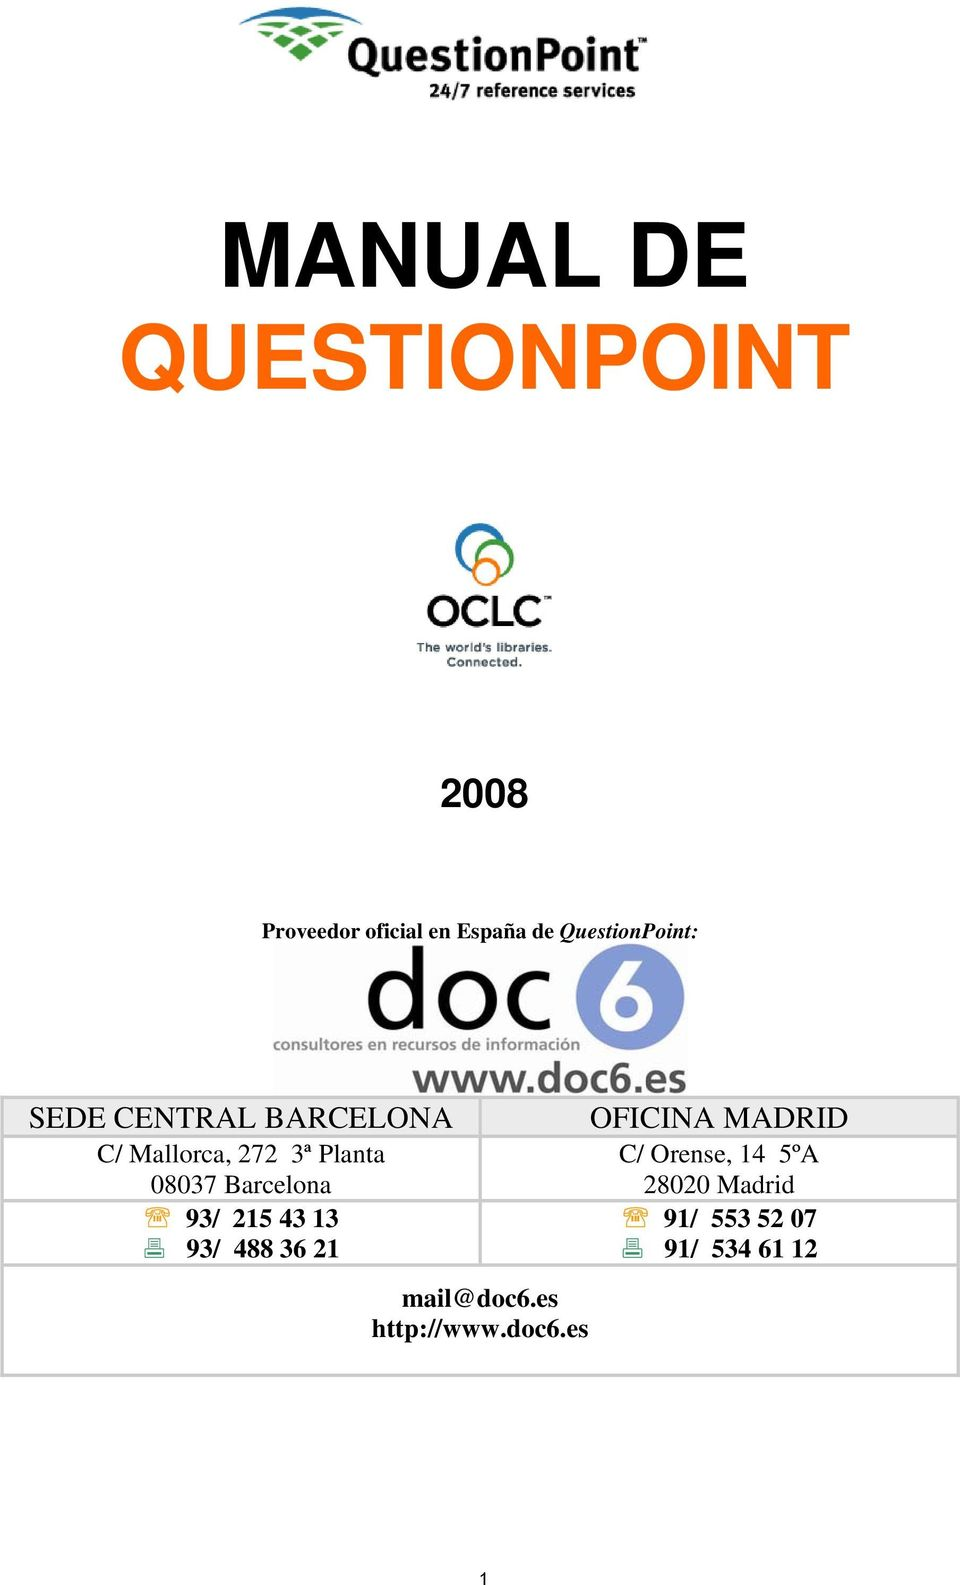 08037 Barcelona 93/ 215 43 13 93/ 488 36 21 mail@doc6.es http://www.